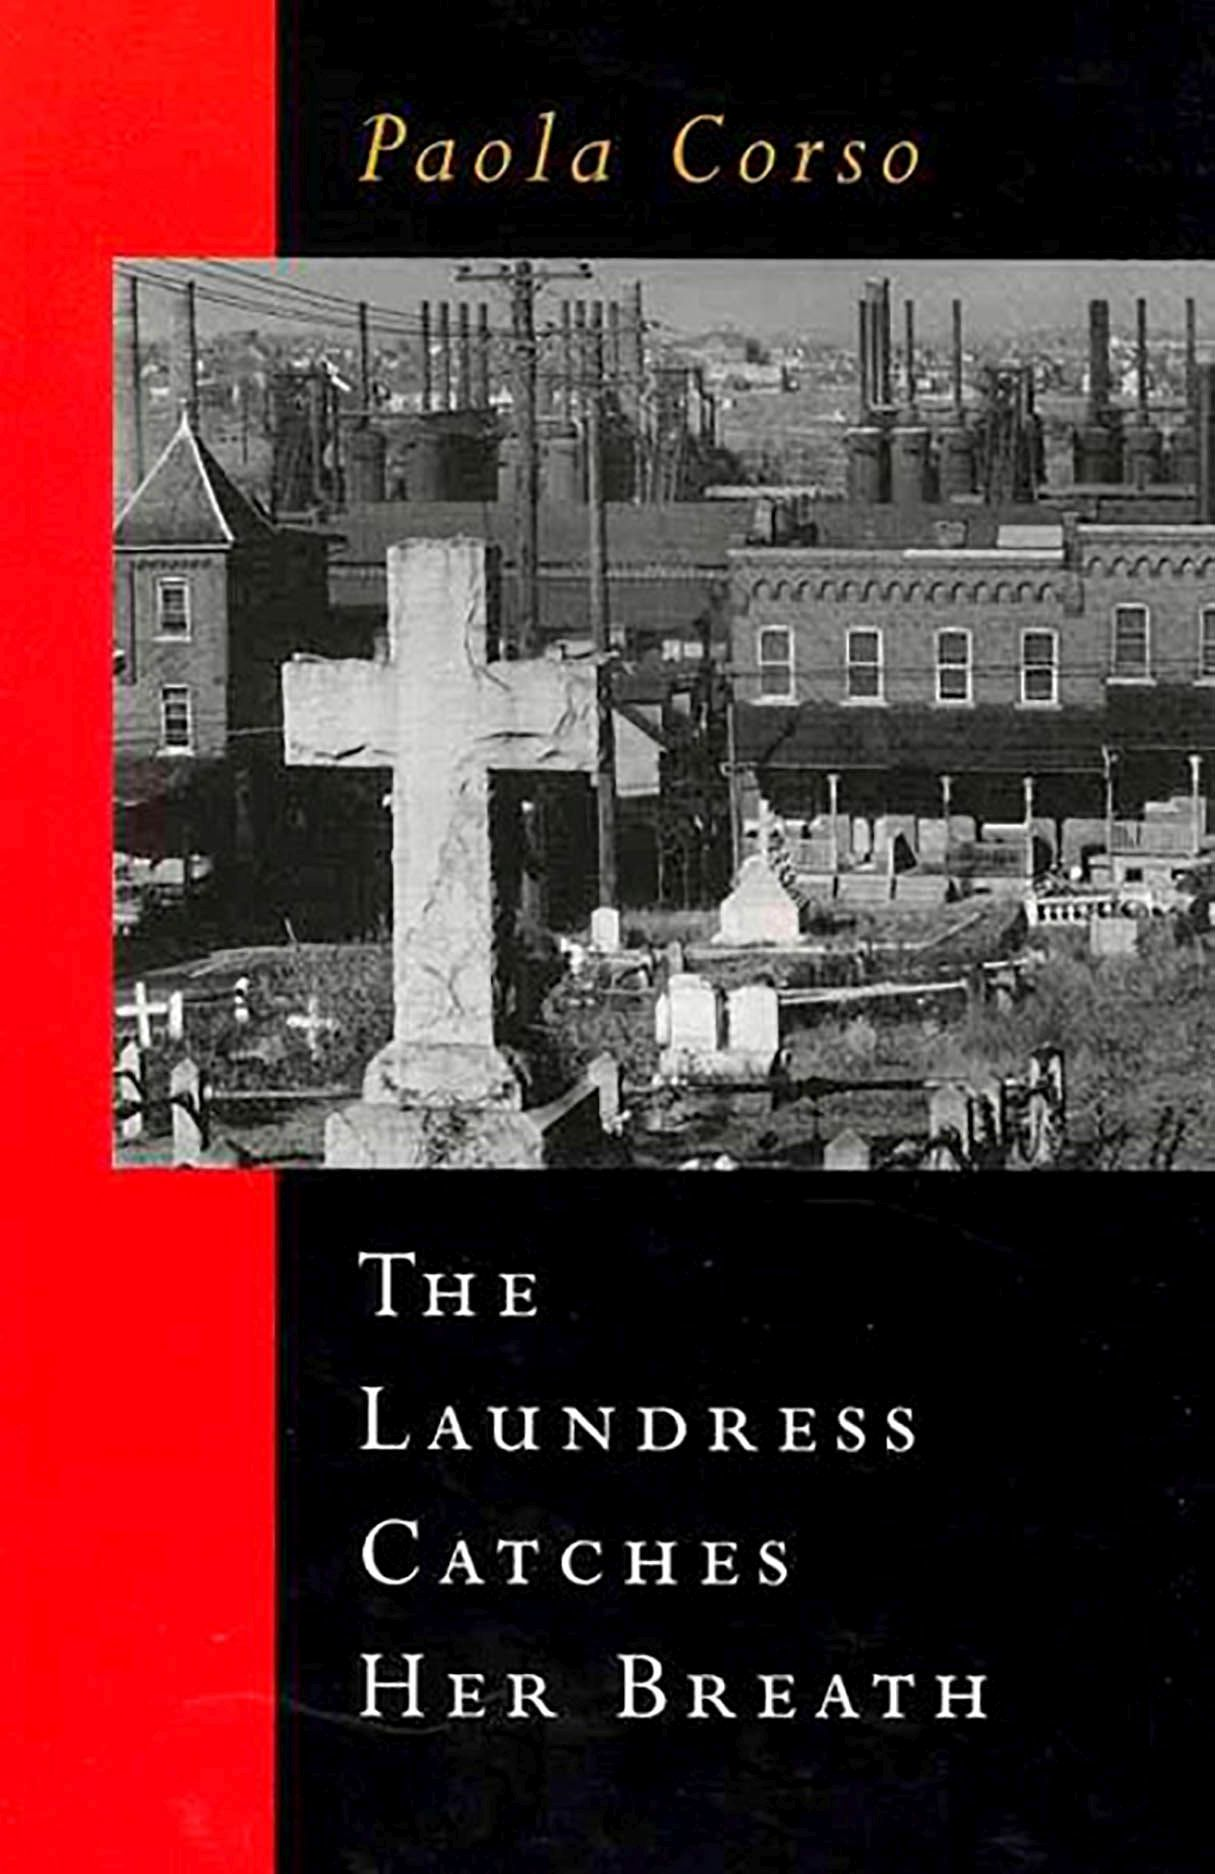 The Laundress Catches Her Breath